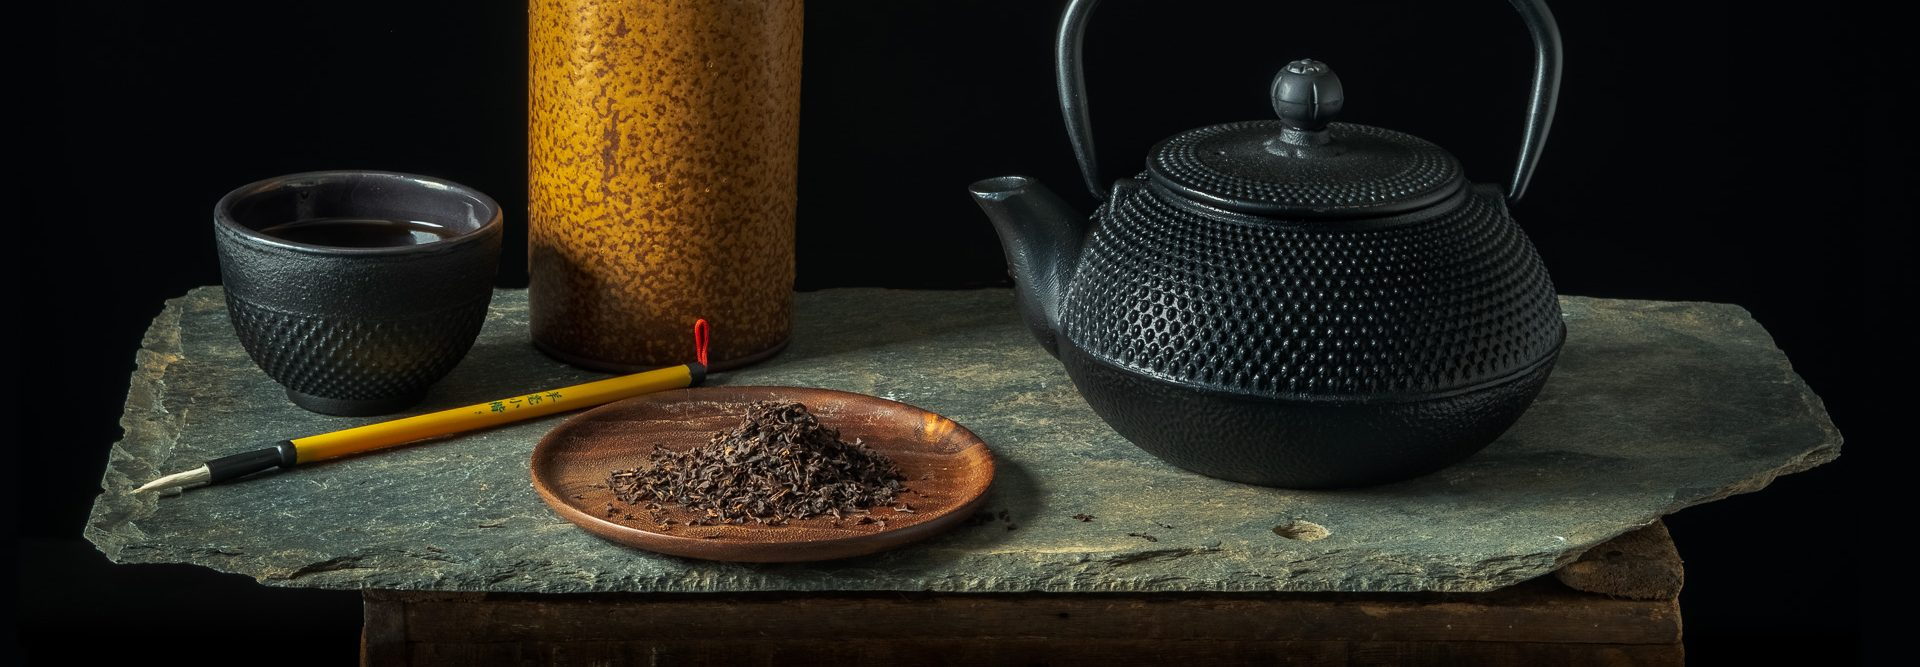 Japanese Tea Pot with Calligraphy Brushes   Still Life Photography